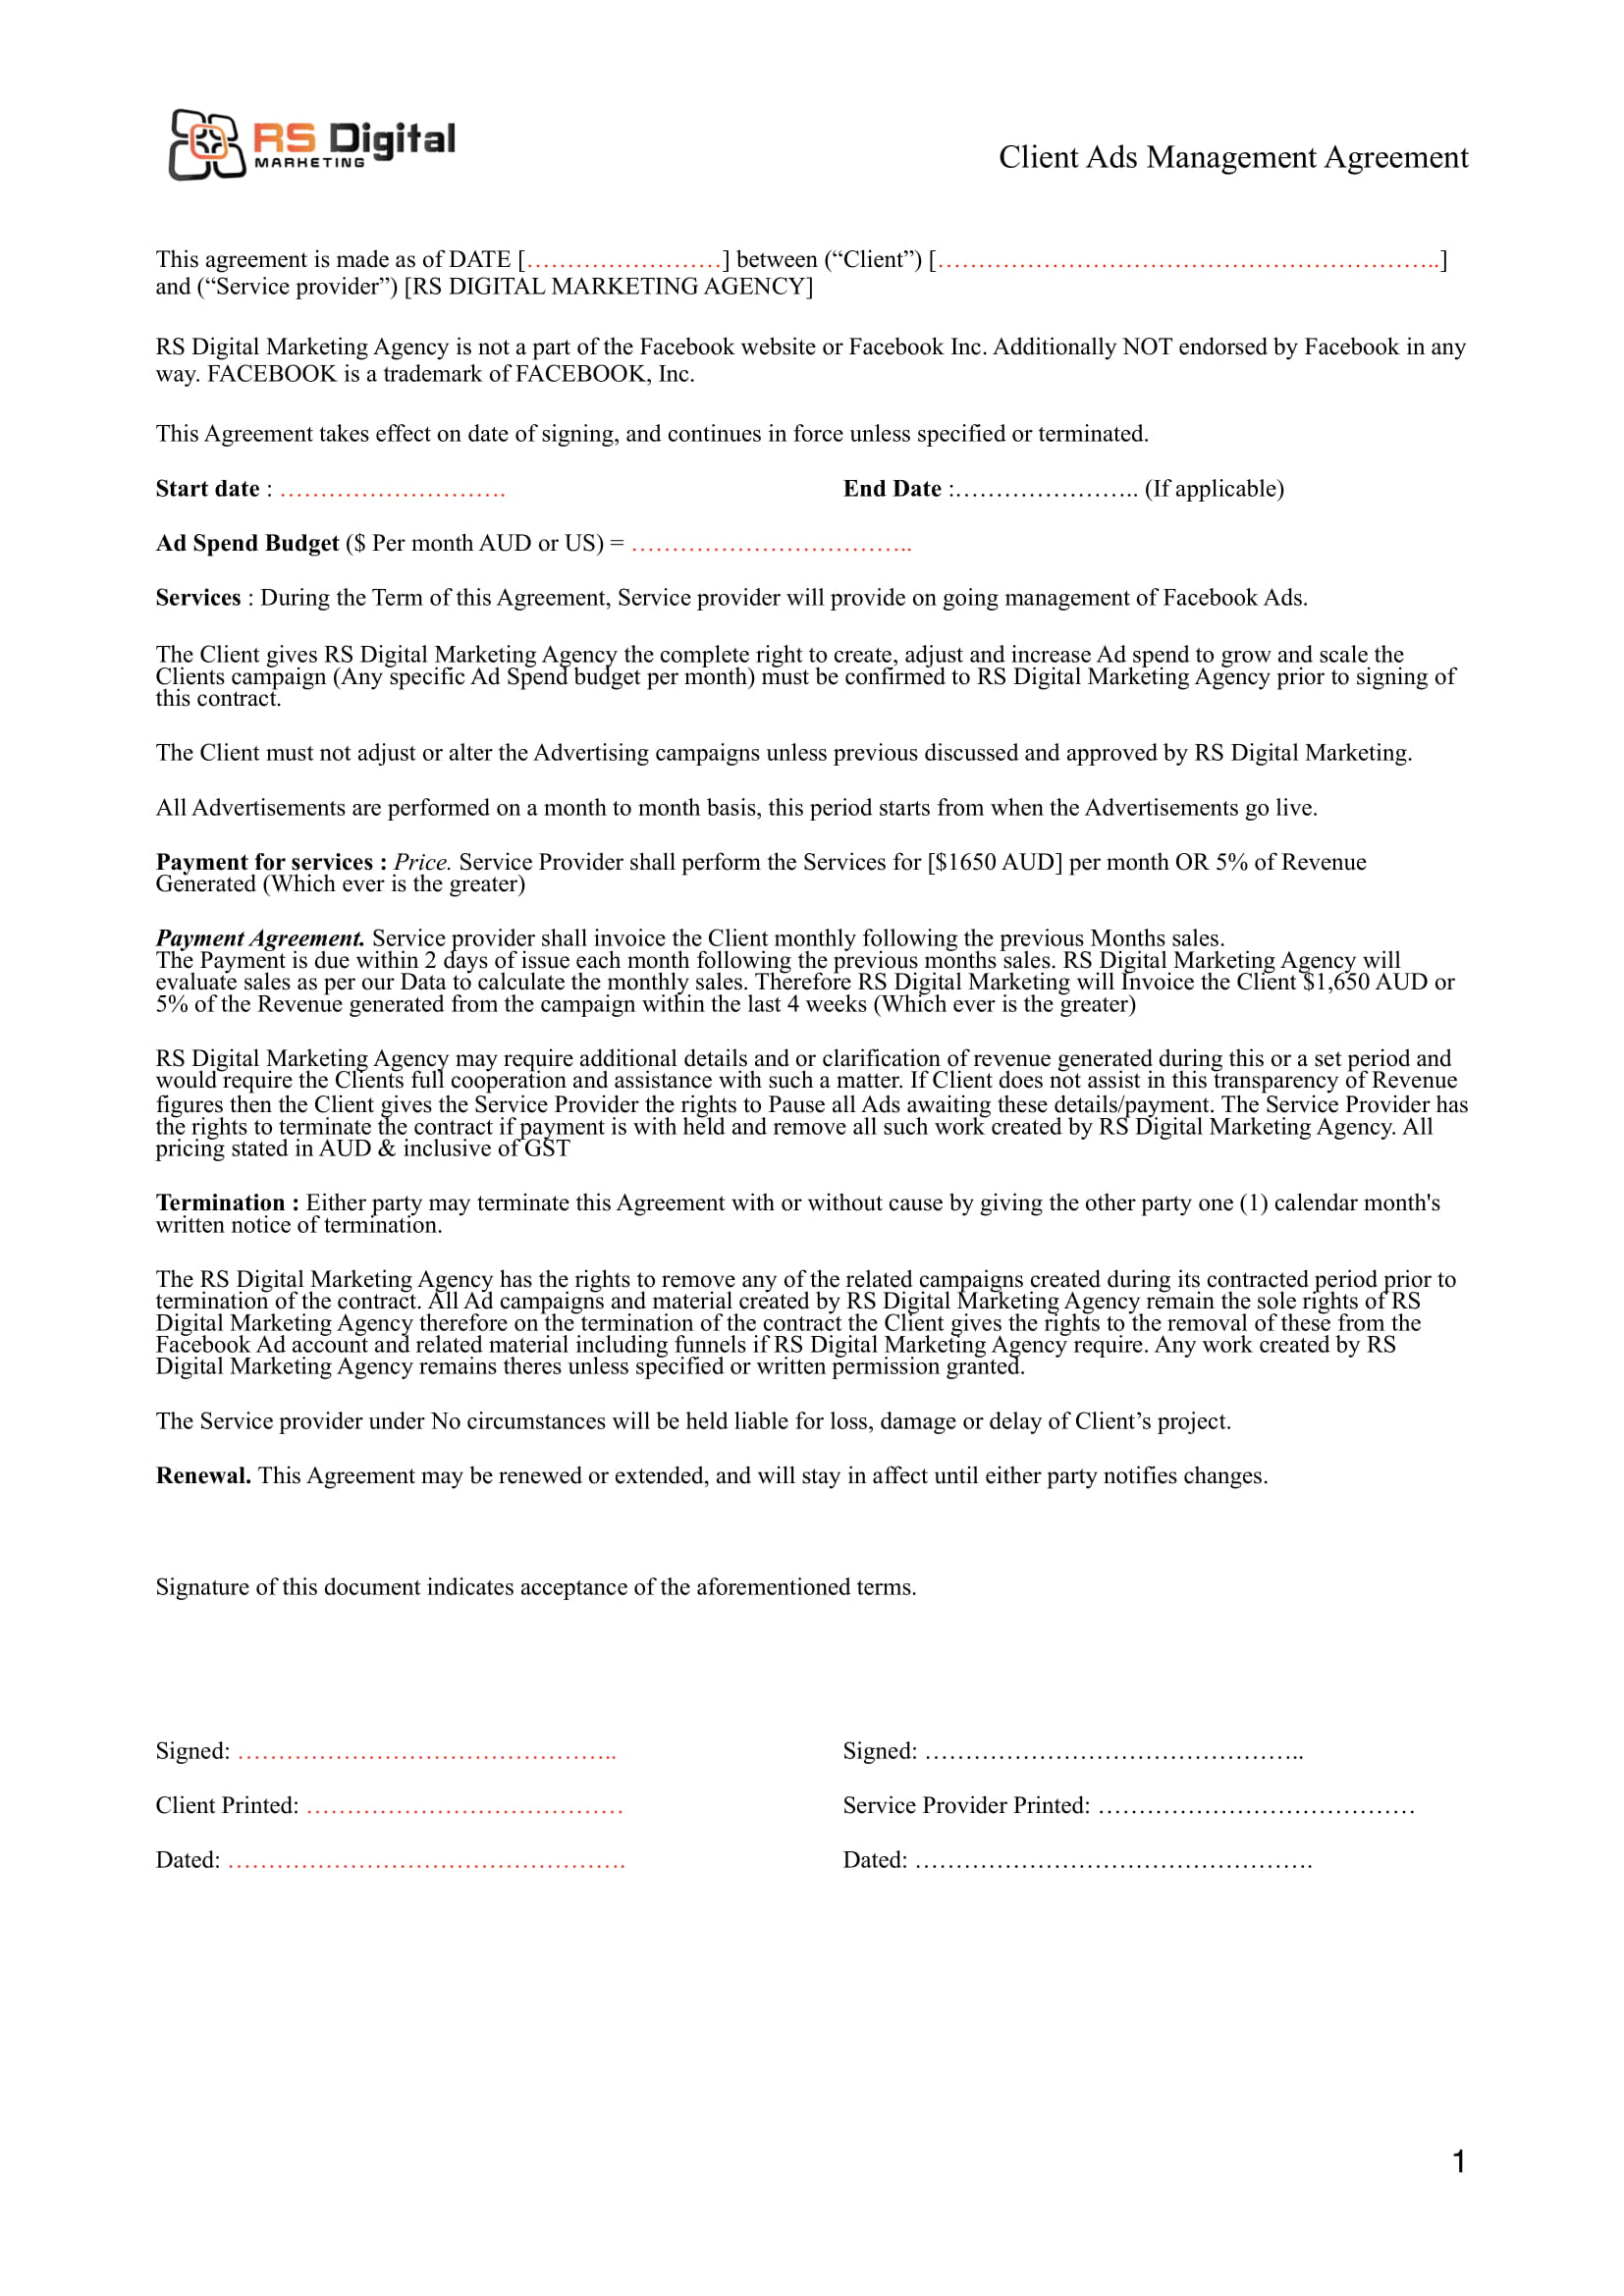 clients ads management digital marketing agreement template example